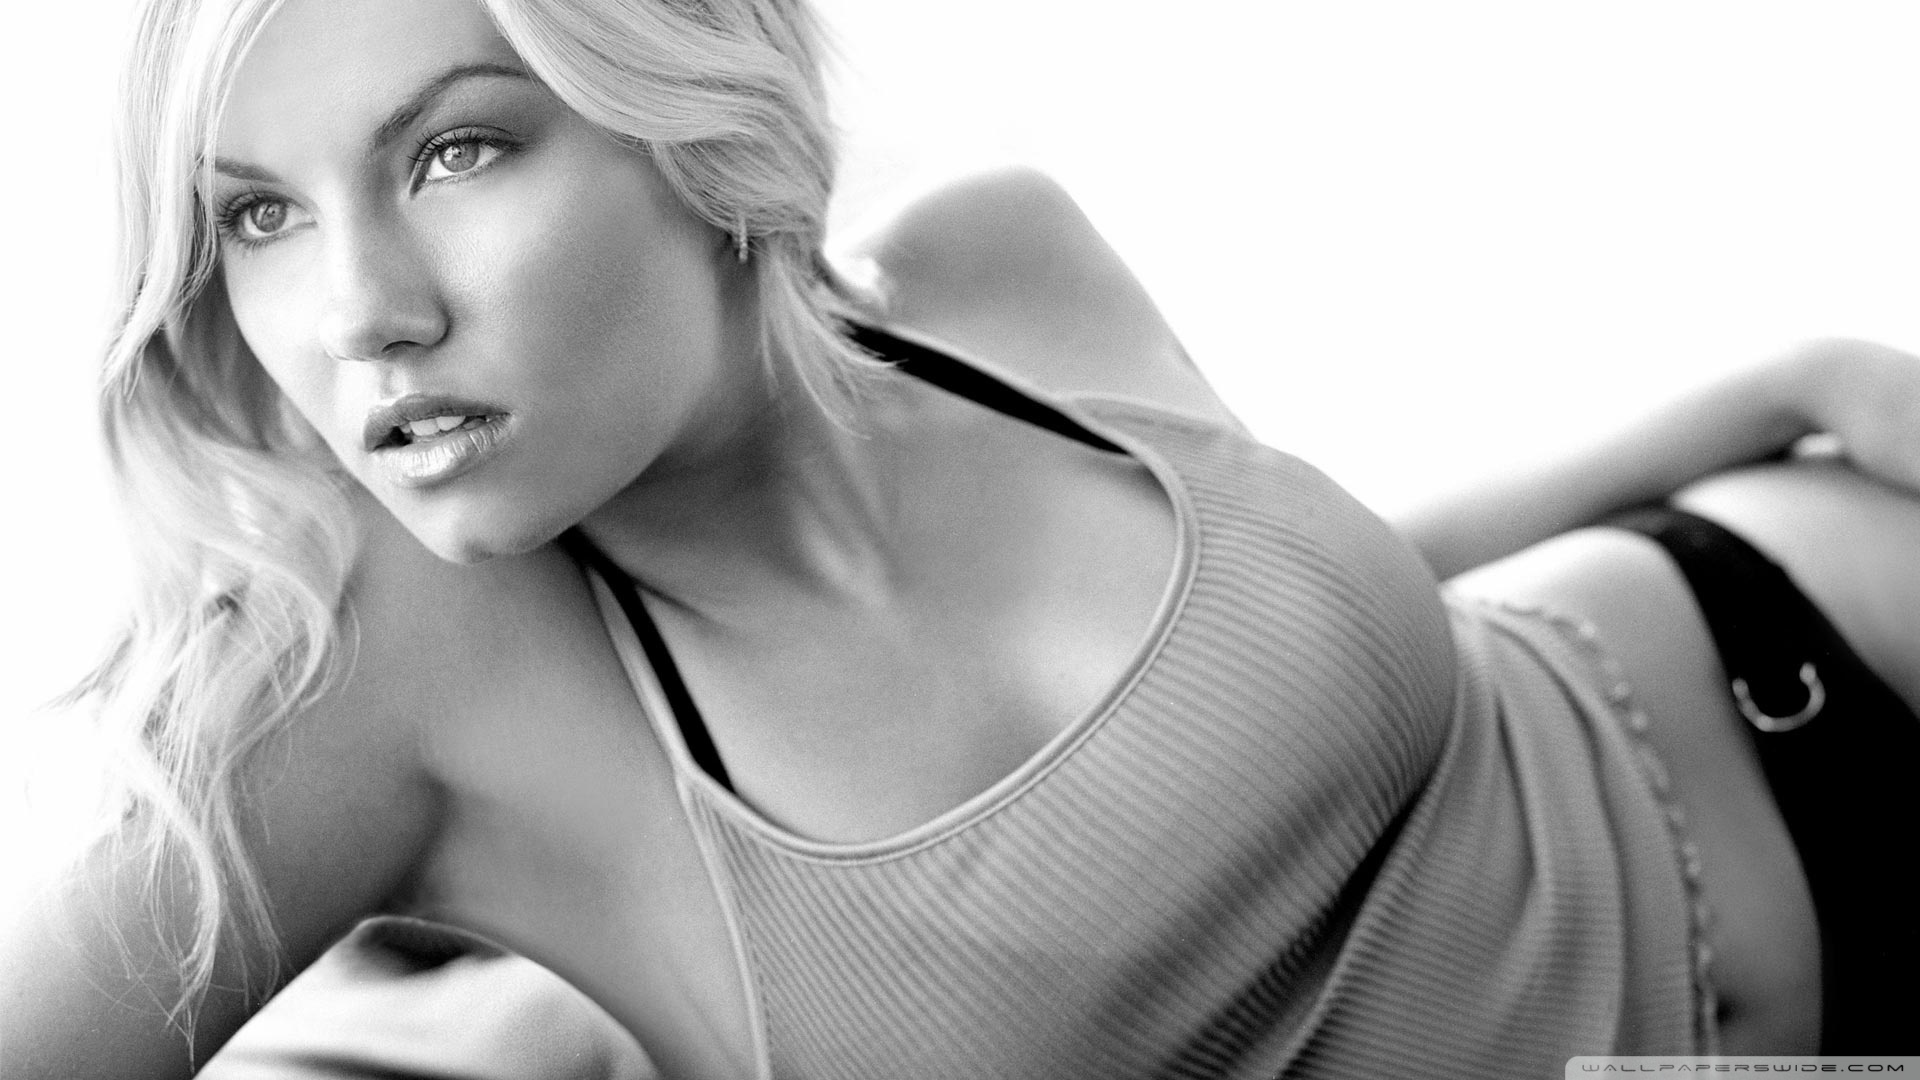 Awesome background pictures wallpapersafari - Elisha Cuthbert Wallpapers Hd Wallpapersafari